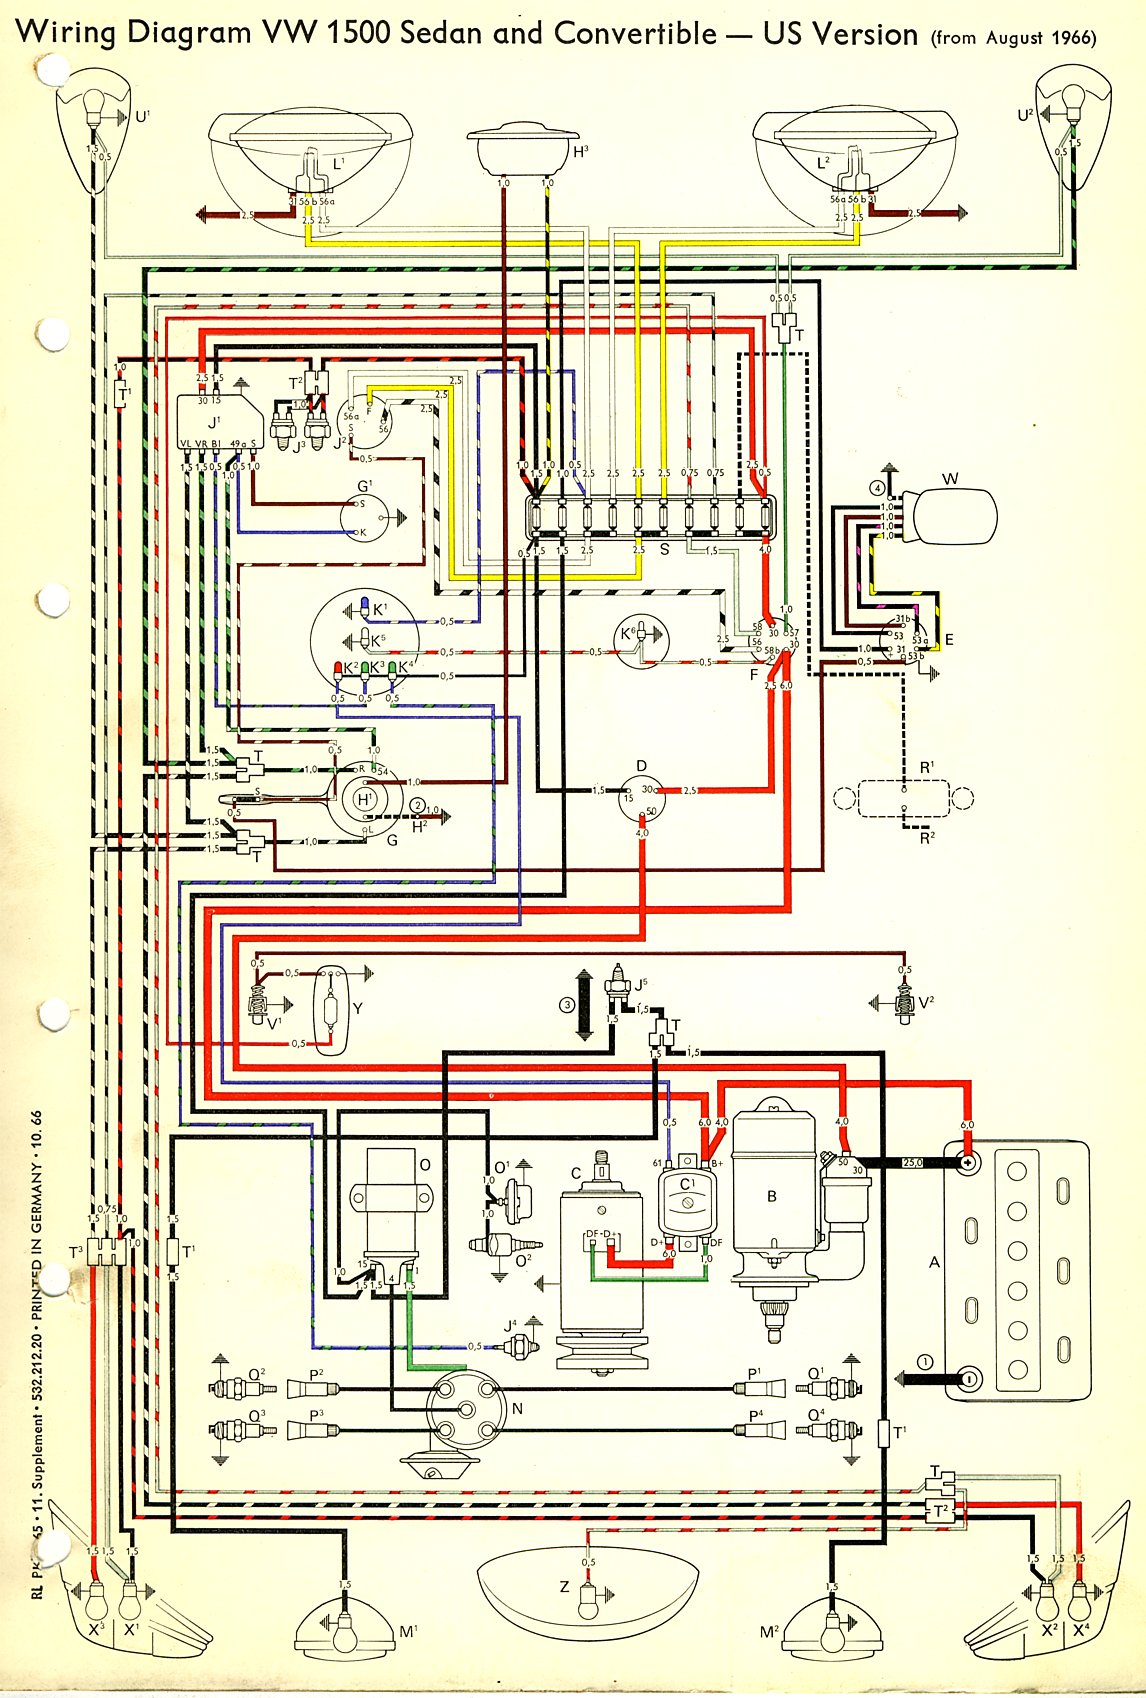 thesamba.com :: type 1 wiring diagrams volkswagen bug engine diagram 64 volkswagen bug wiring diagram #10